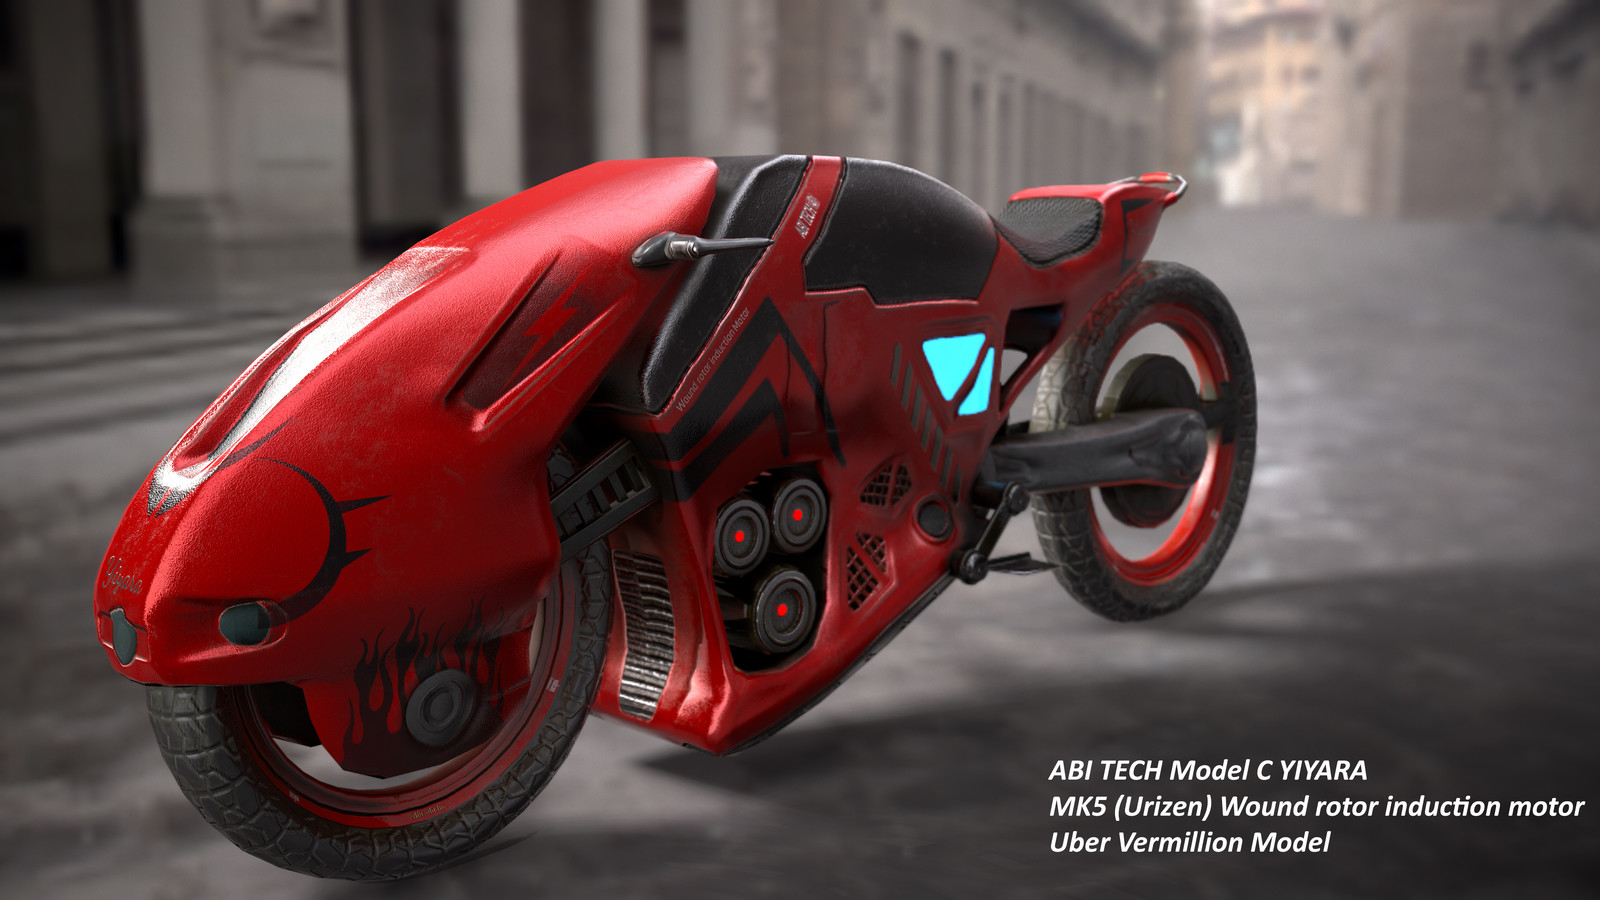 ABI Tech Model C Yiyara electric motor bike (Ultra Vermilion & Consumptive white models)